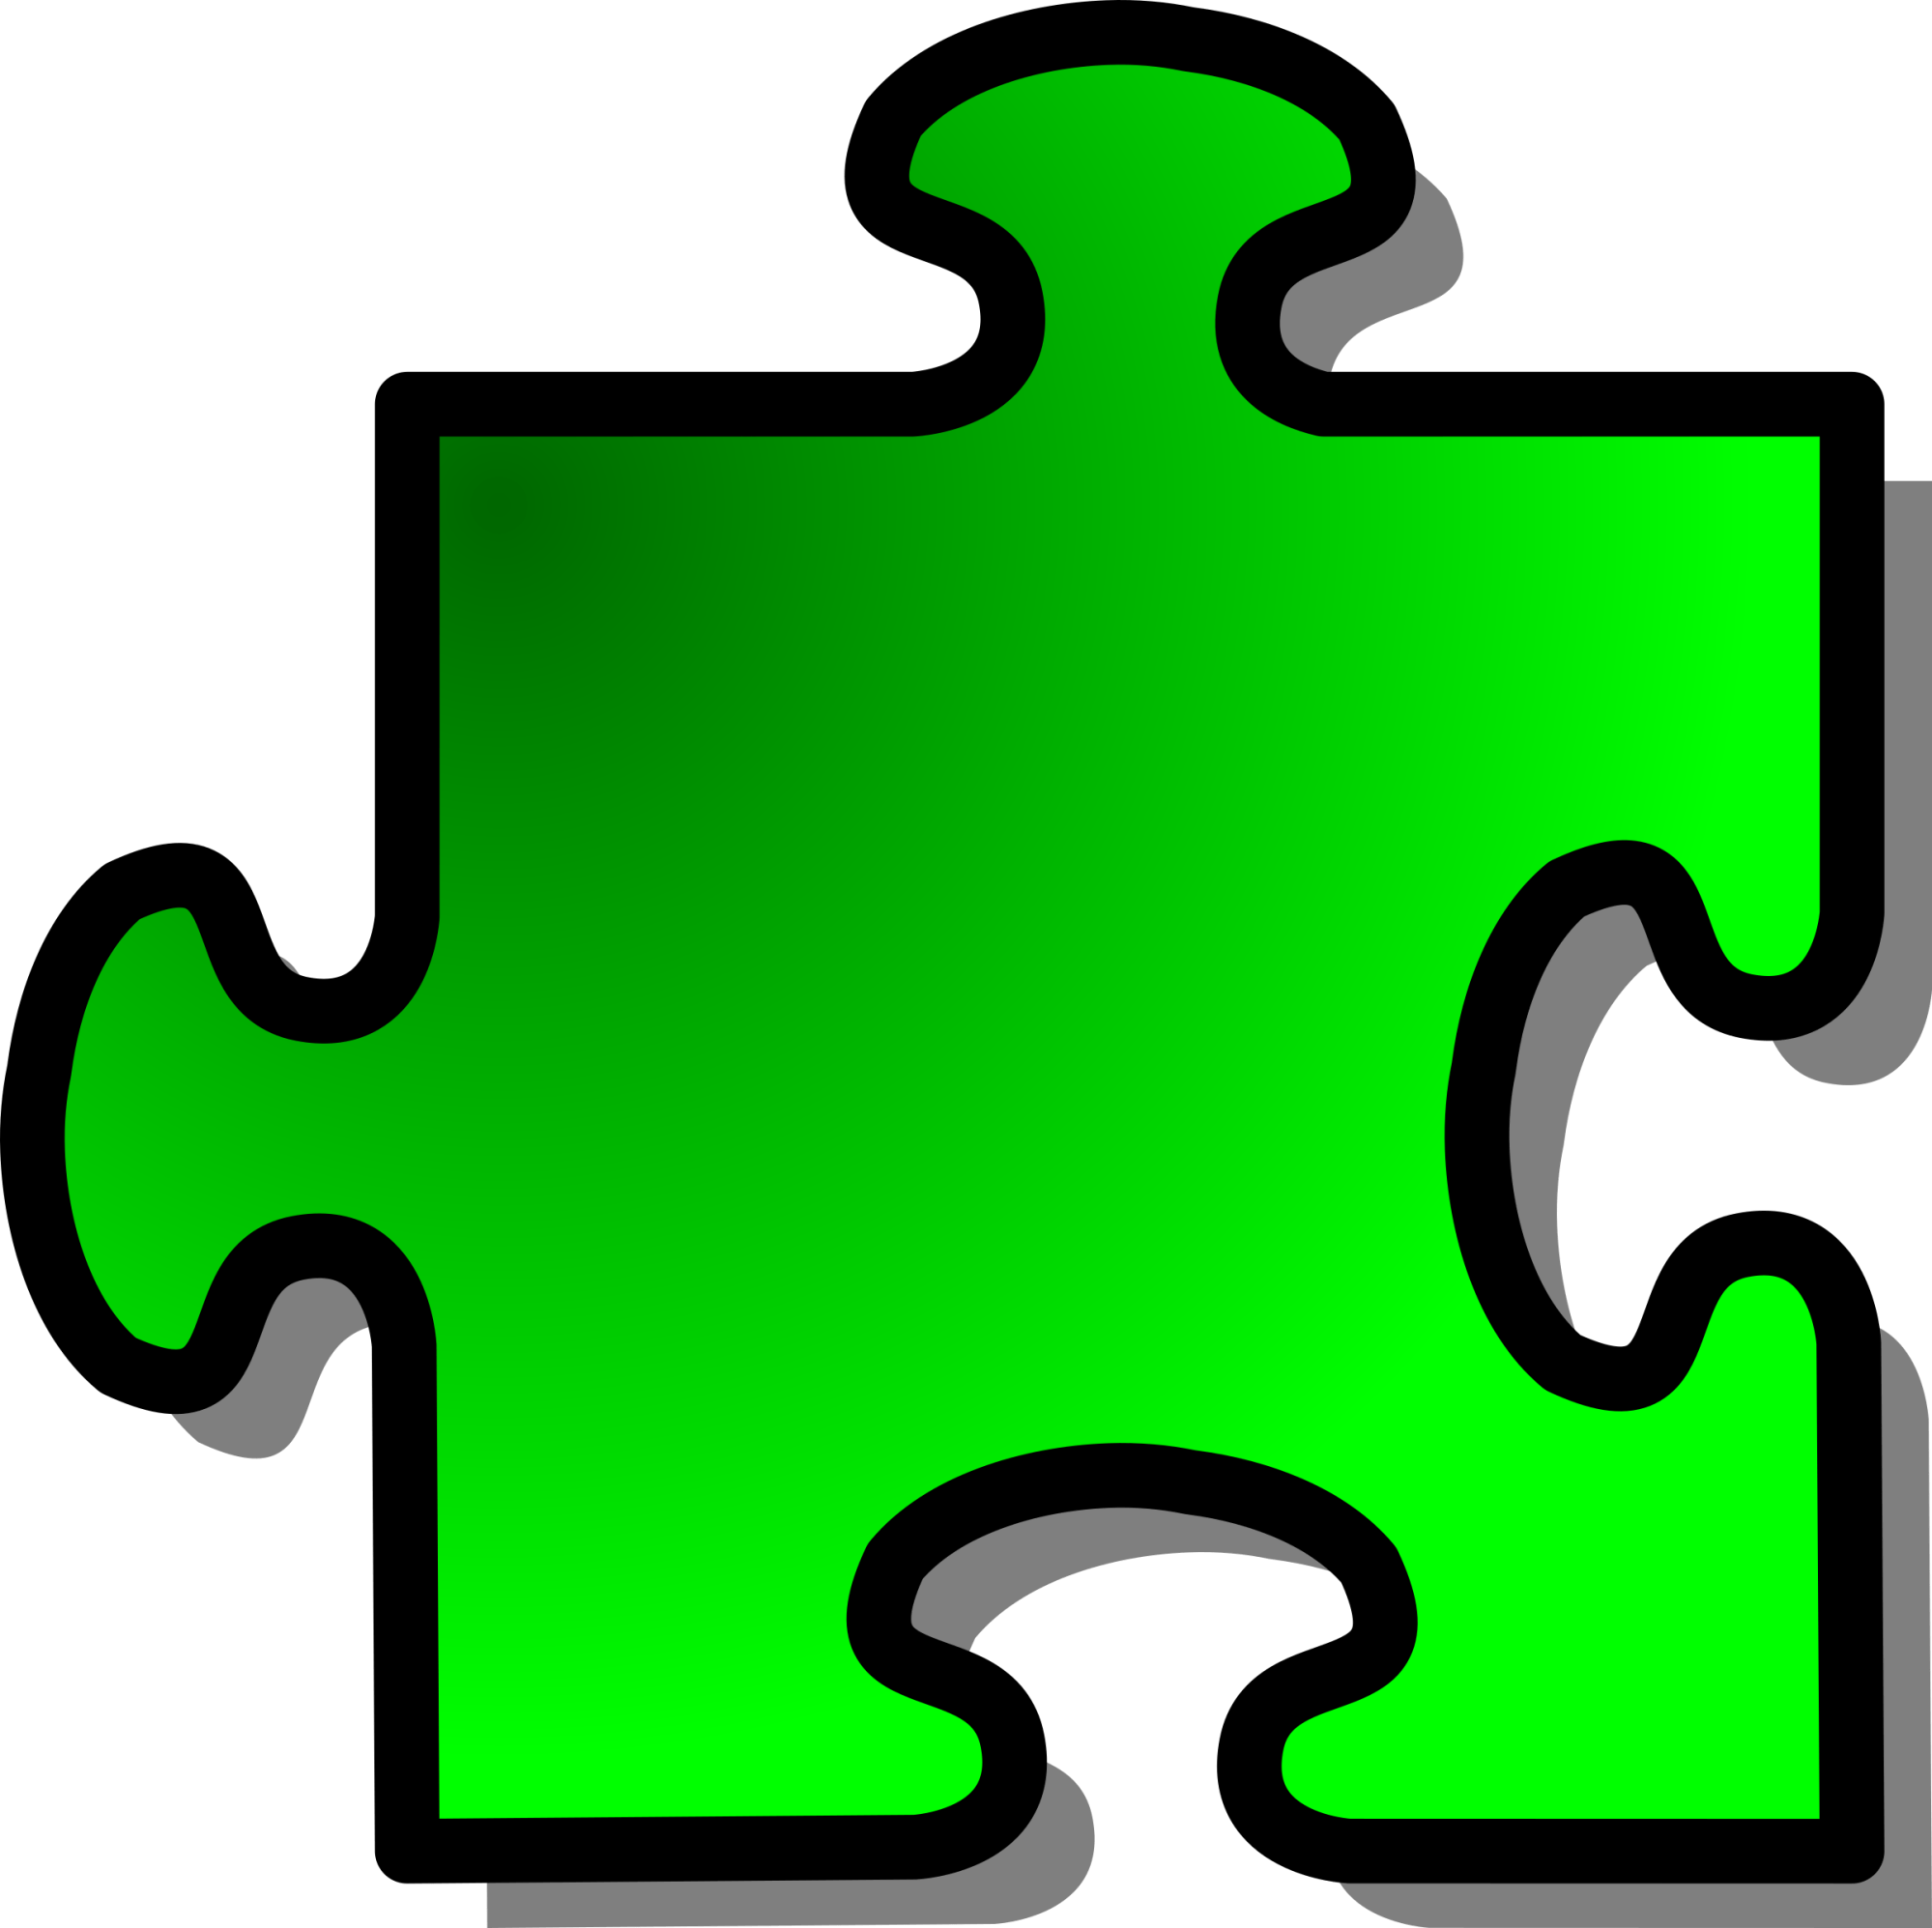 hight resolution of puzzles clipart puzzle piece green jigsaw big image